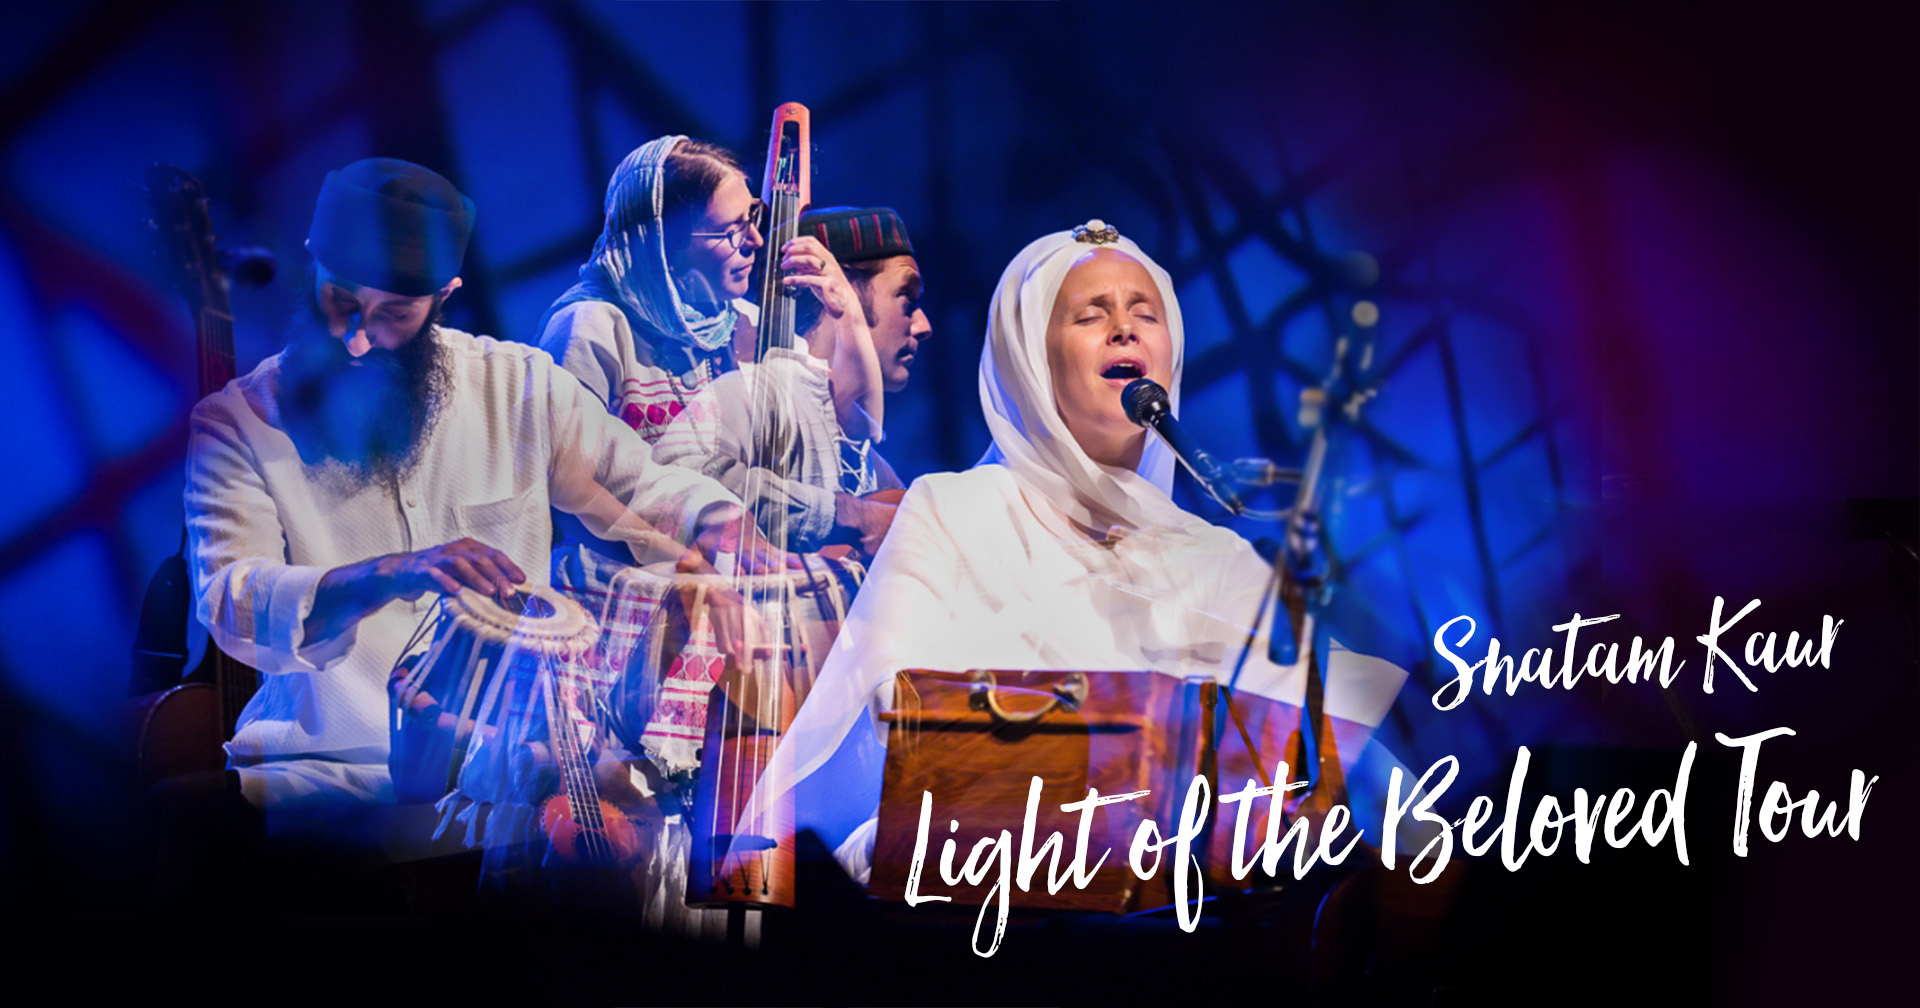 Tickets for Sacred Chant Concert with Snatam Kaur in Washington from BrightStar Live Events